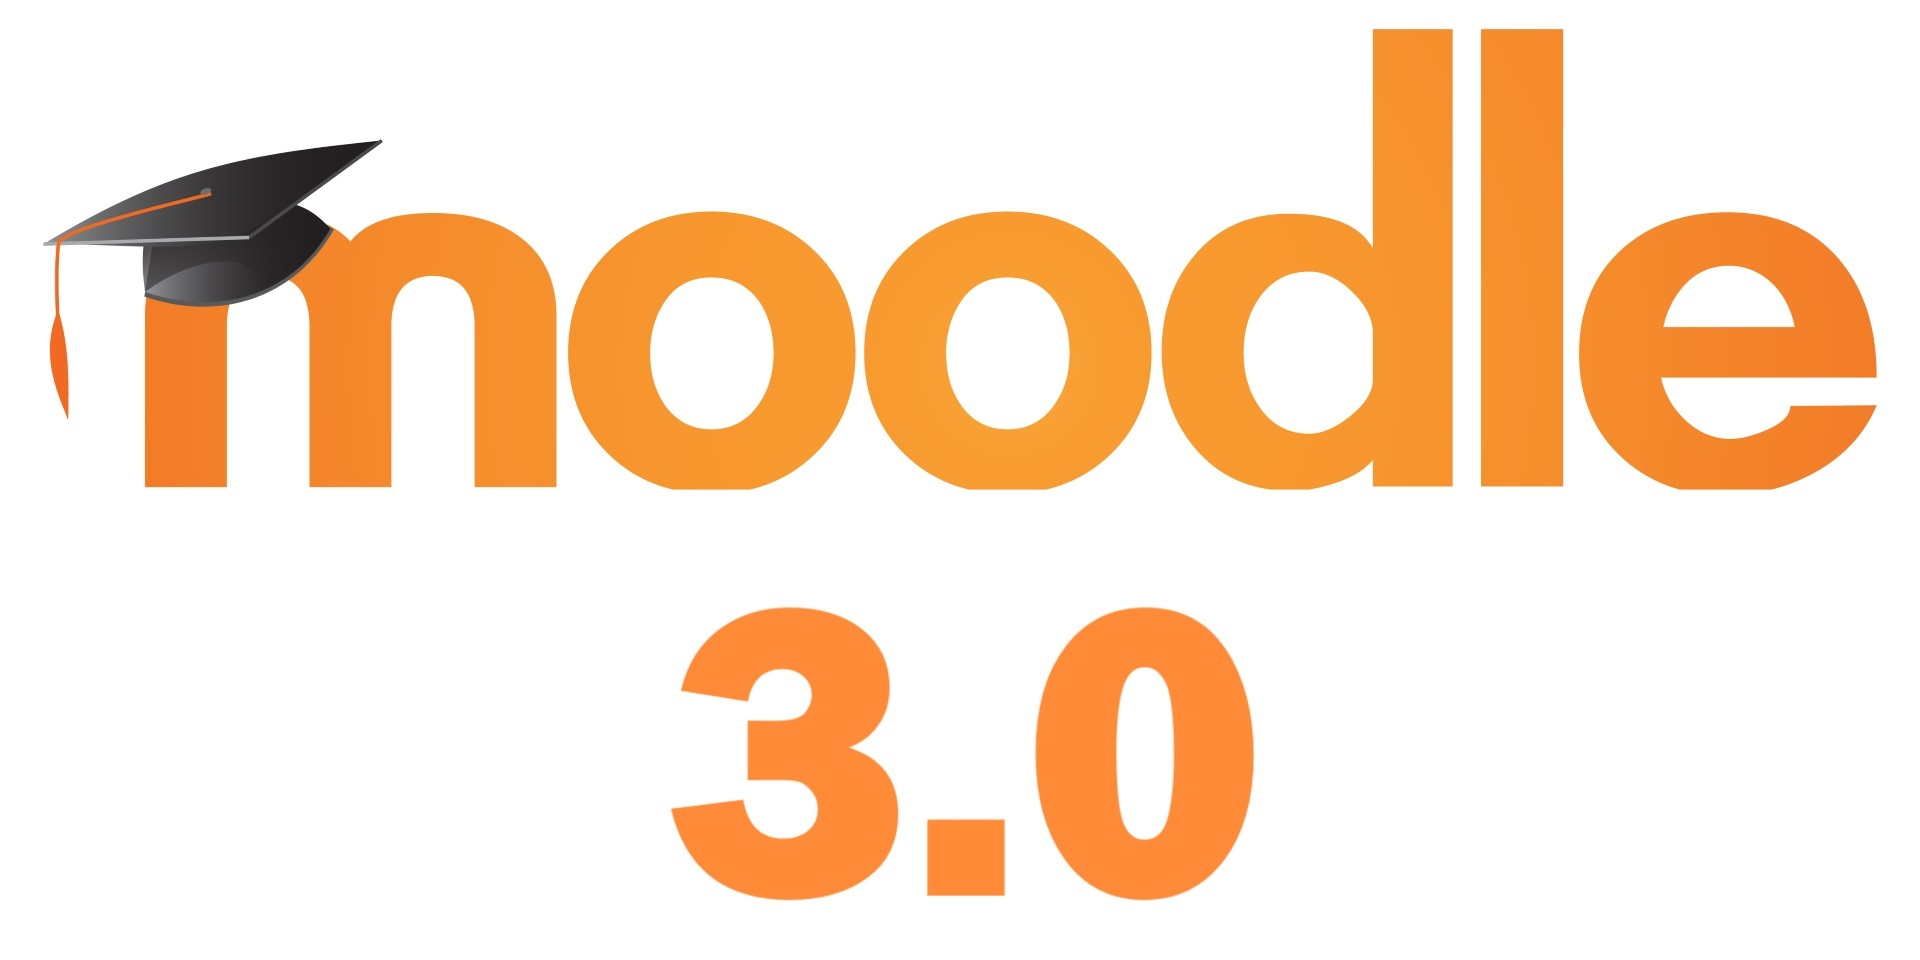 What's new in Moodle 3.0?